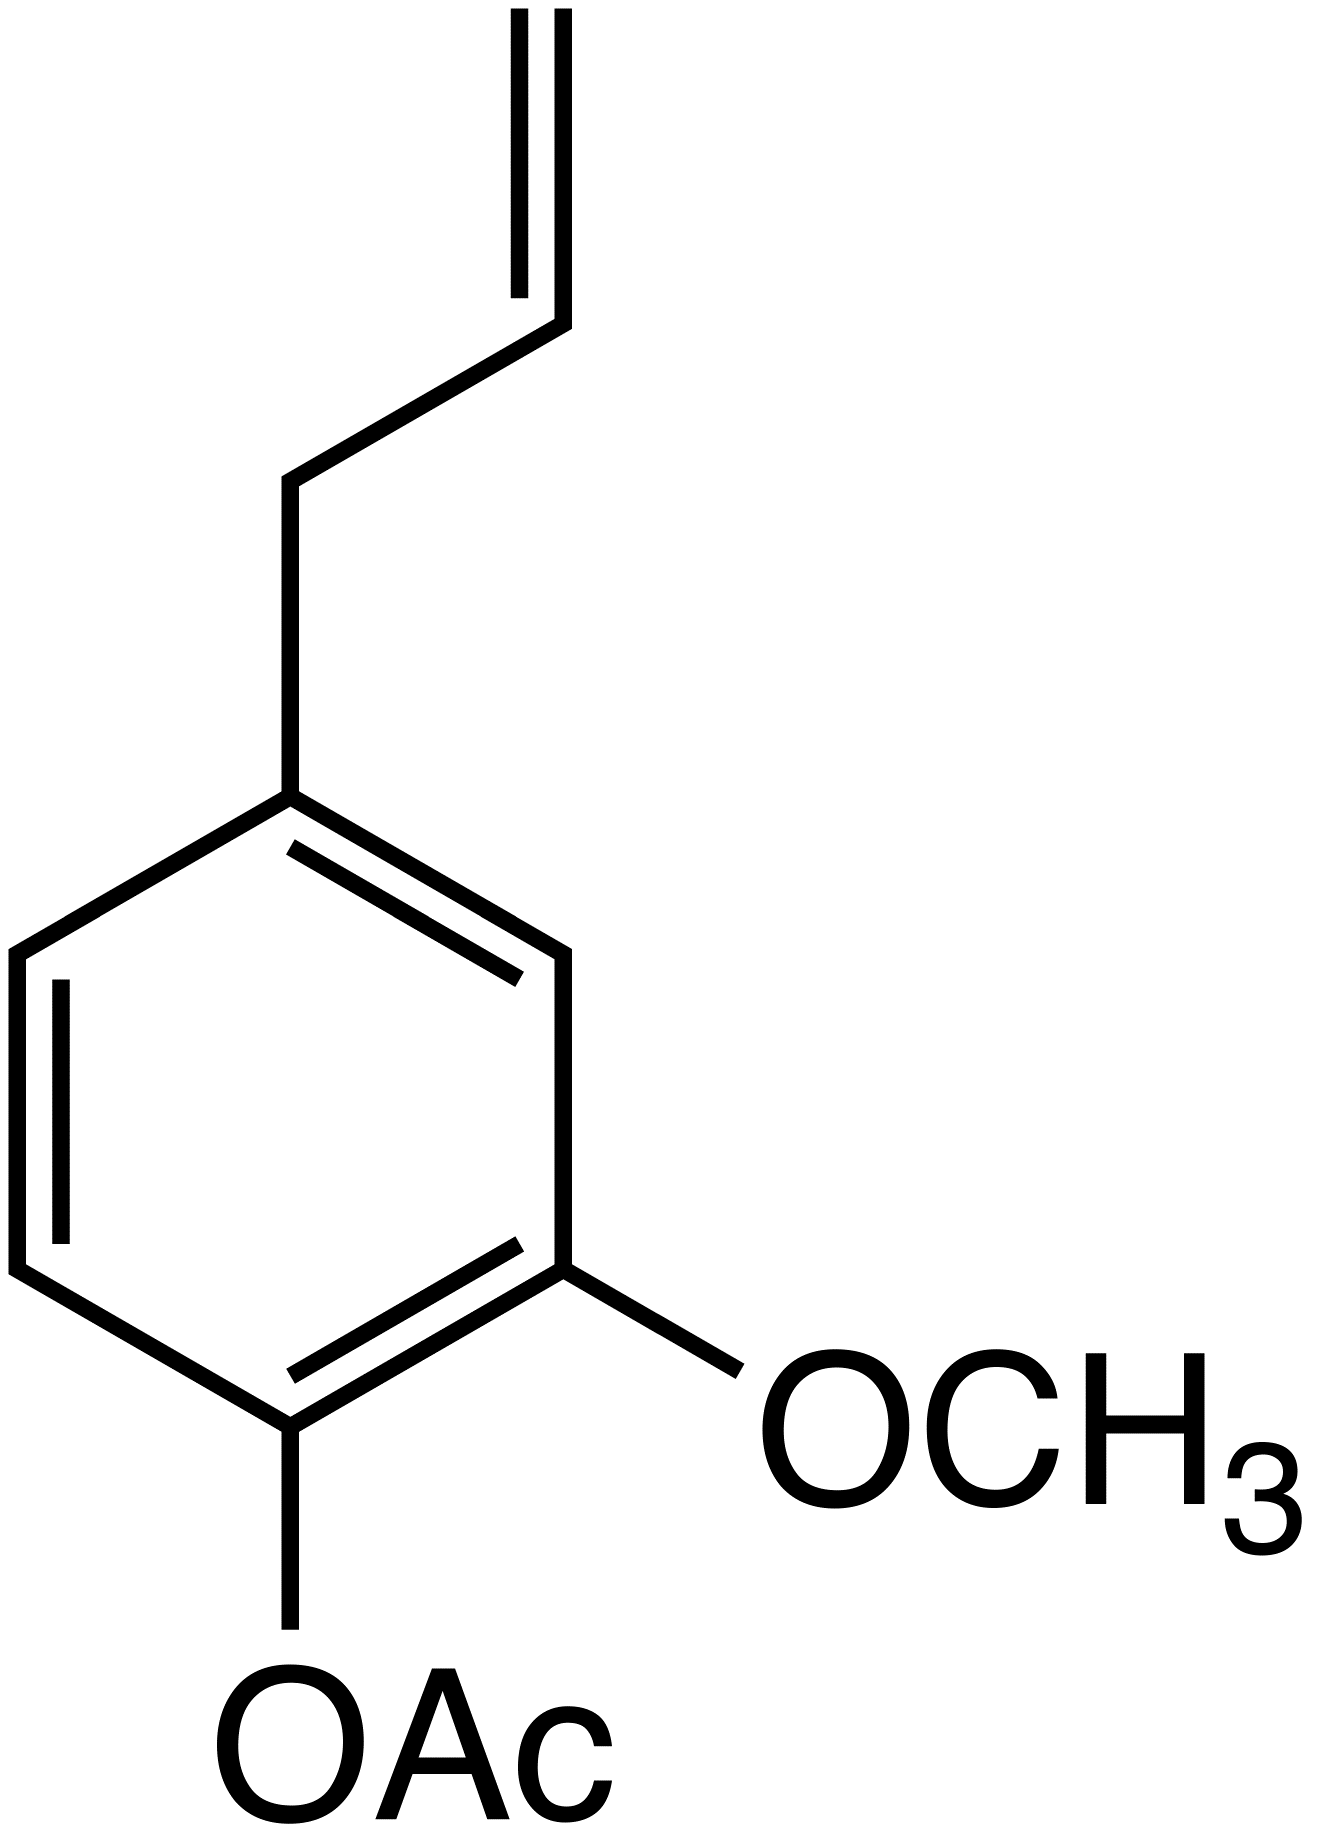 acetylated eugenol image